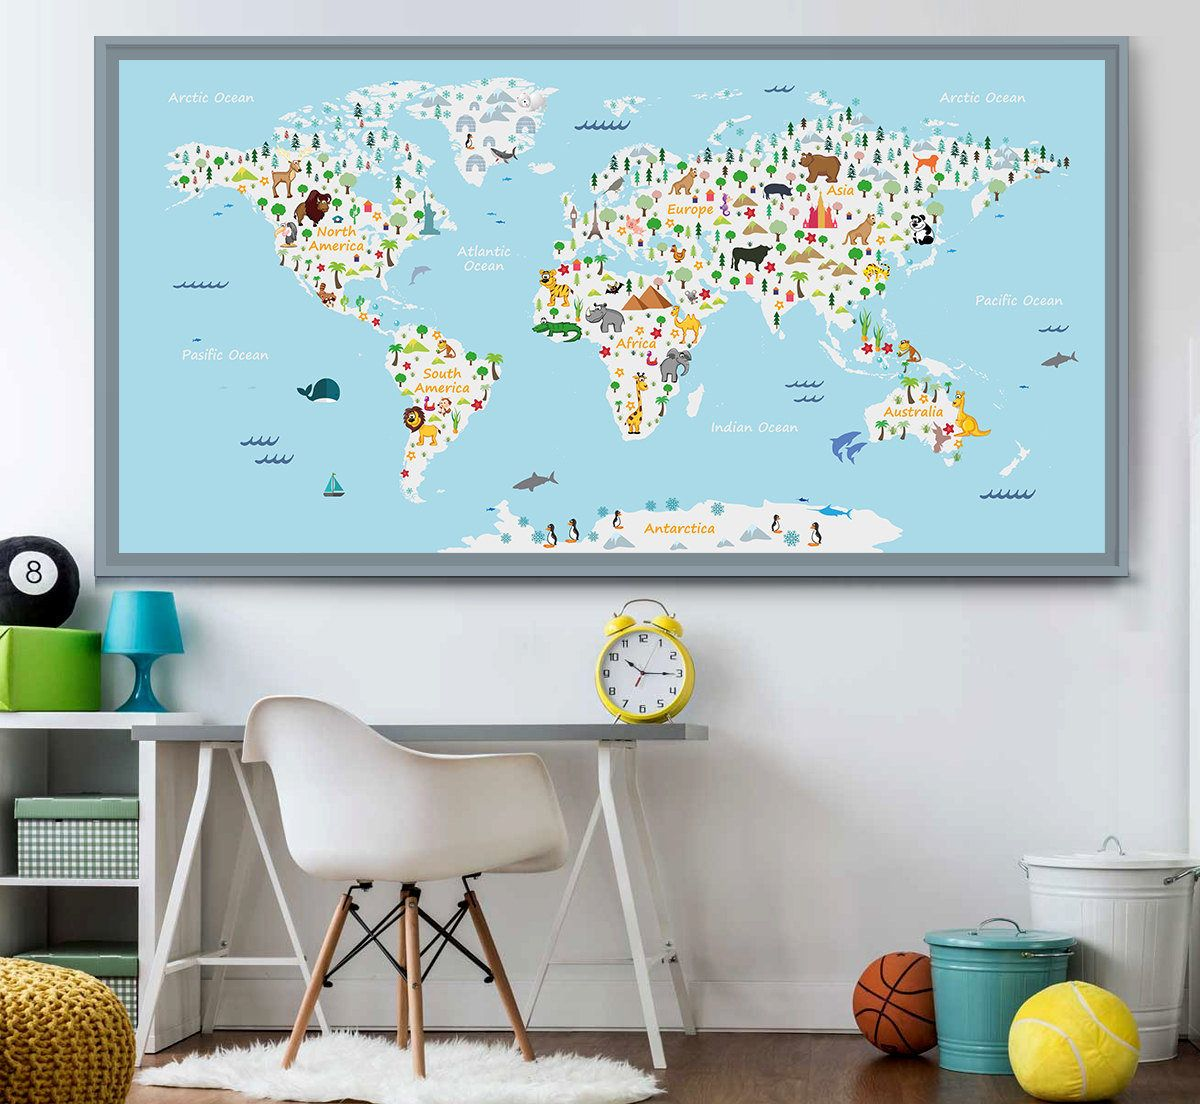 Large animal world map kids world map poster nursery world map baby large animal world map kids world map poster nursery world map baby room map kids map art animal nursery decor unique baby gift l79 gumiabroncs Image collections